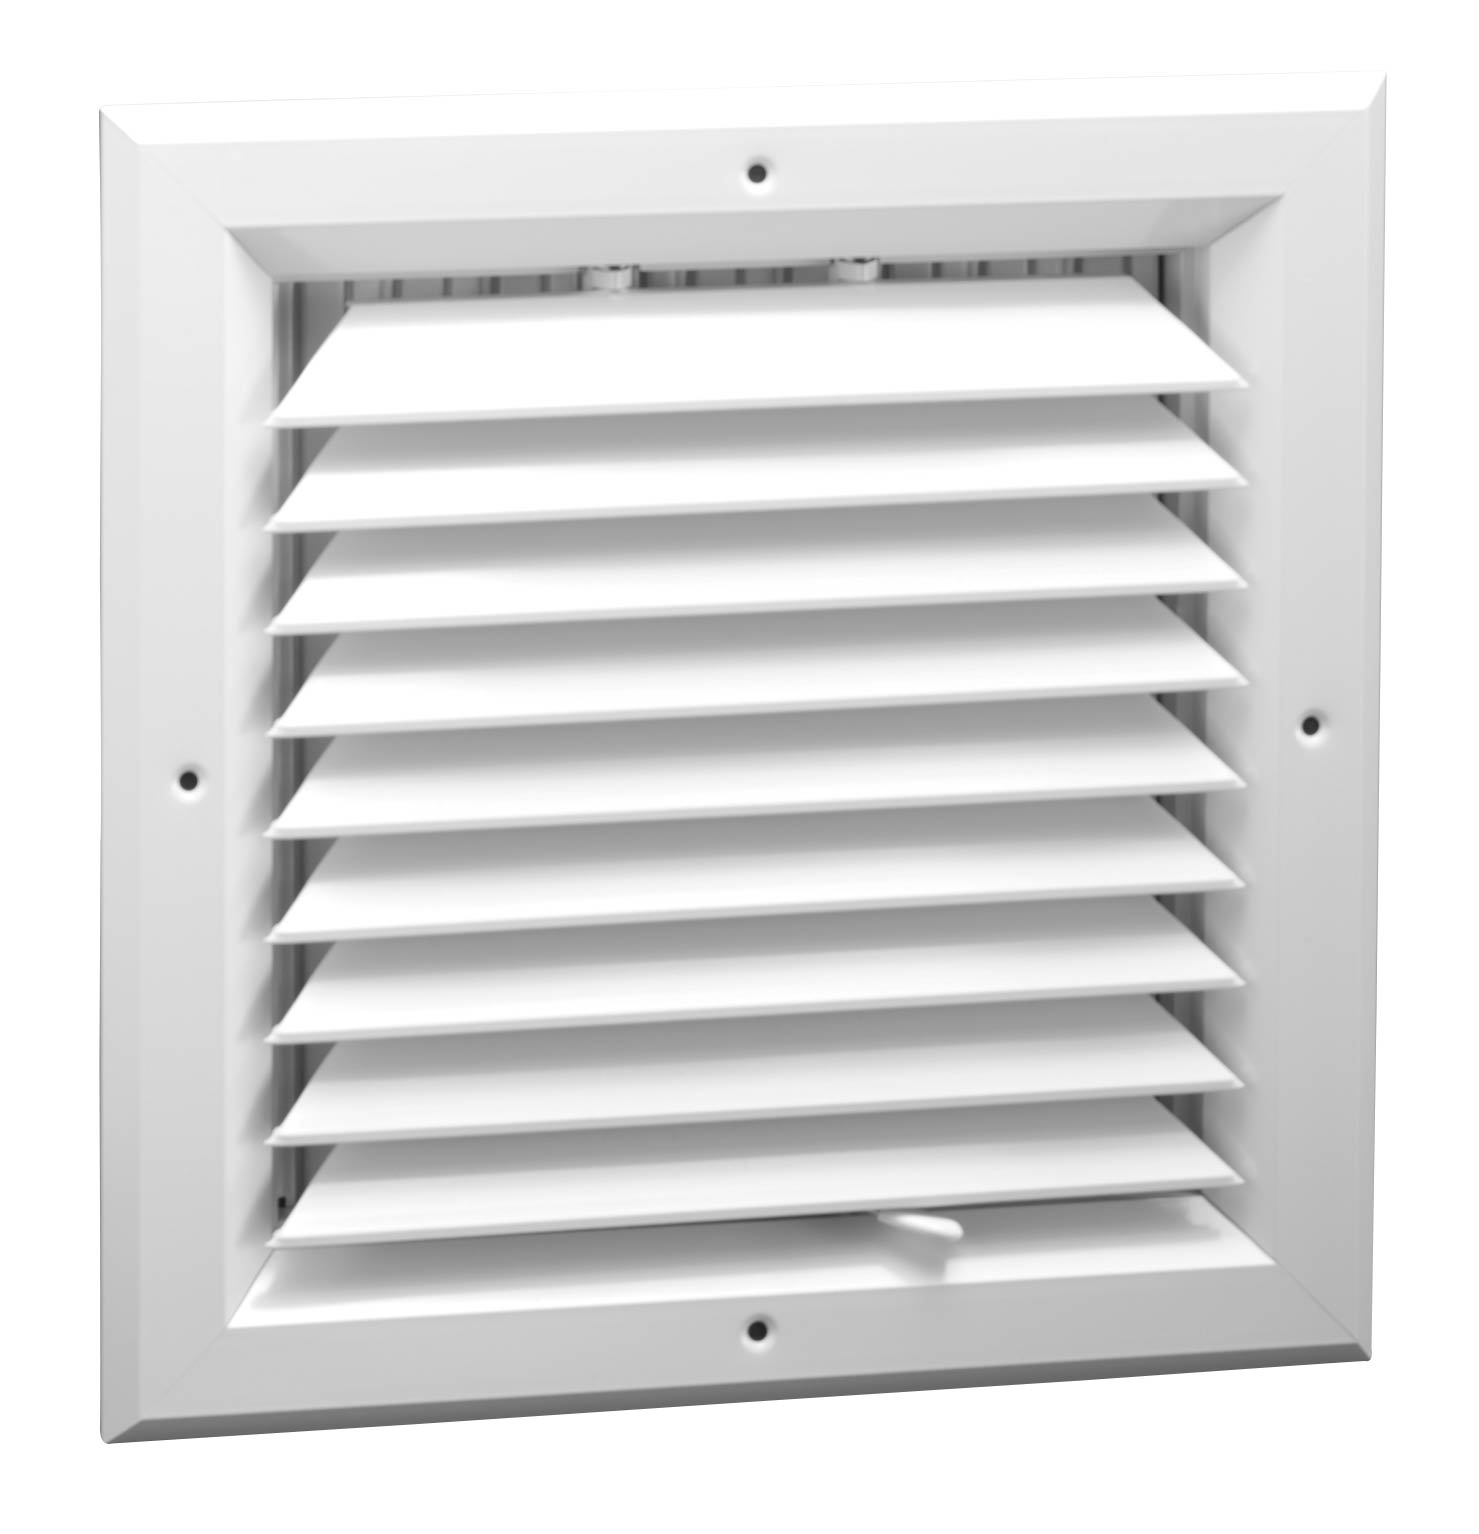 wood index archive chestnut domino vent hardwood ceilings covers air for blog floors vents ceiling flooring